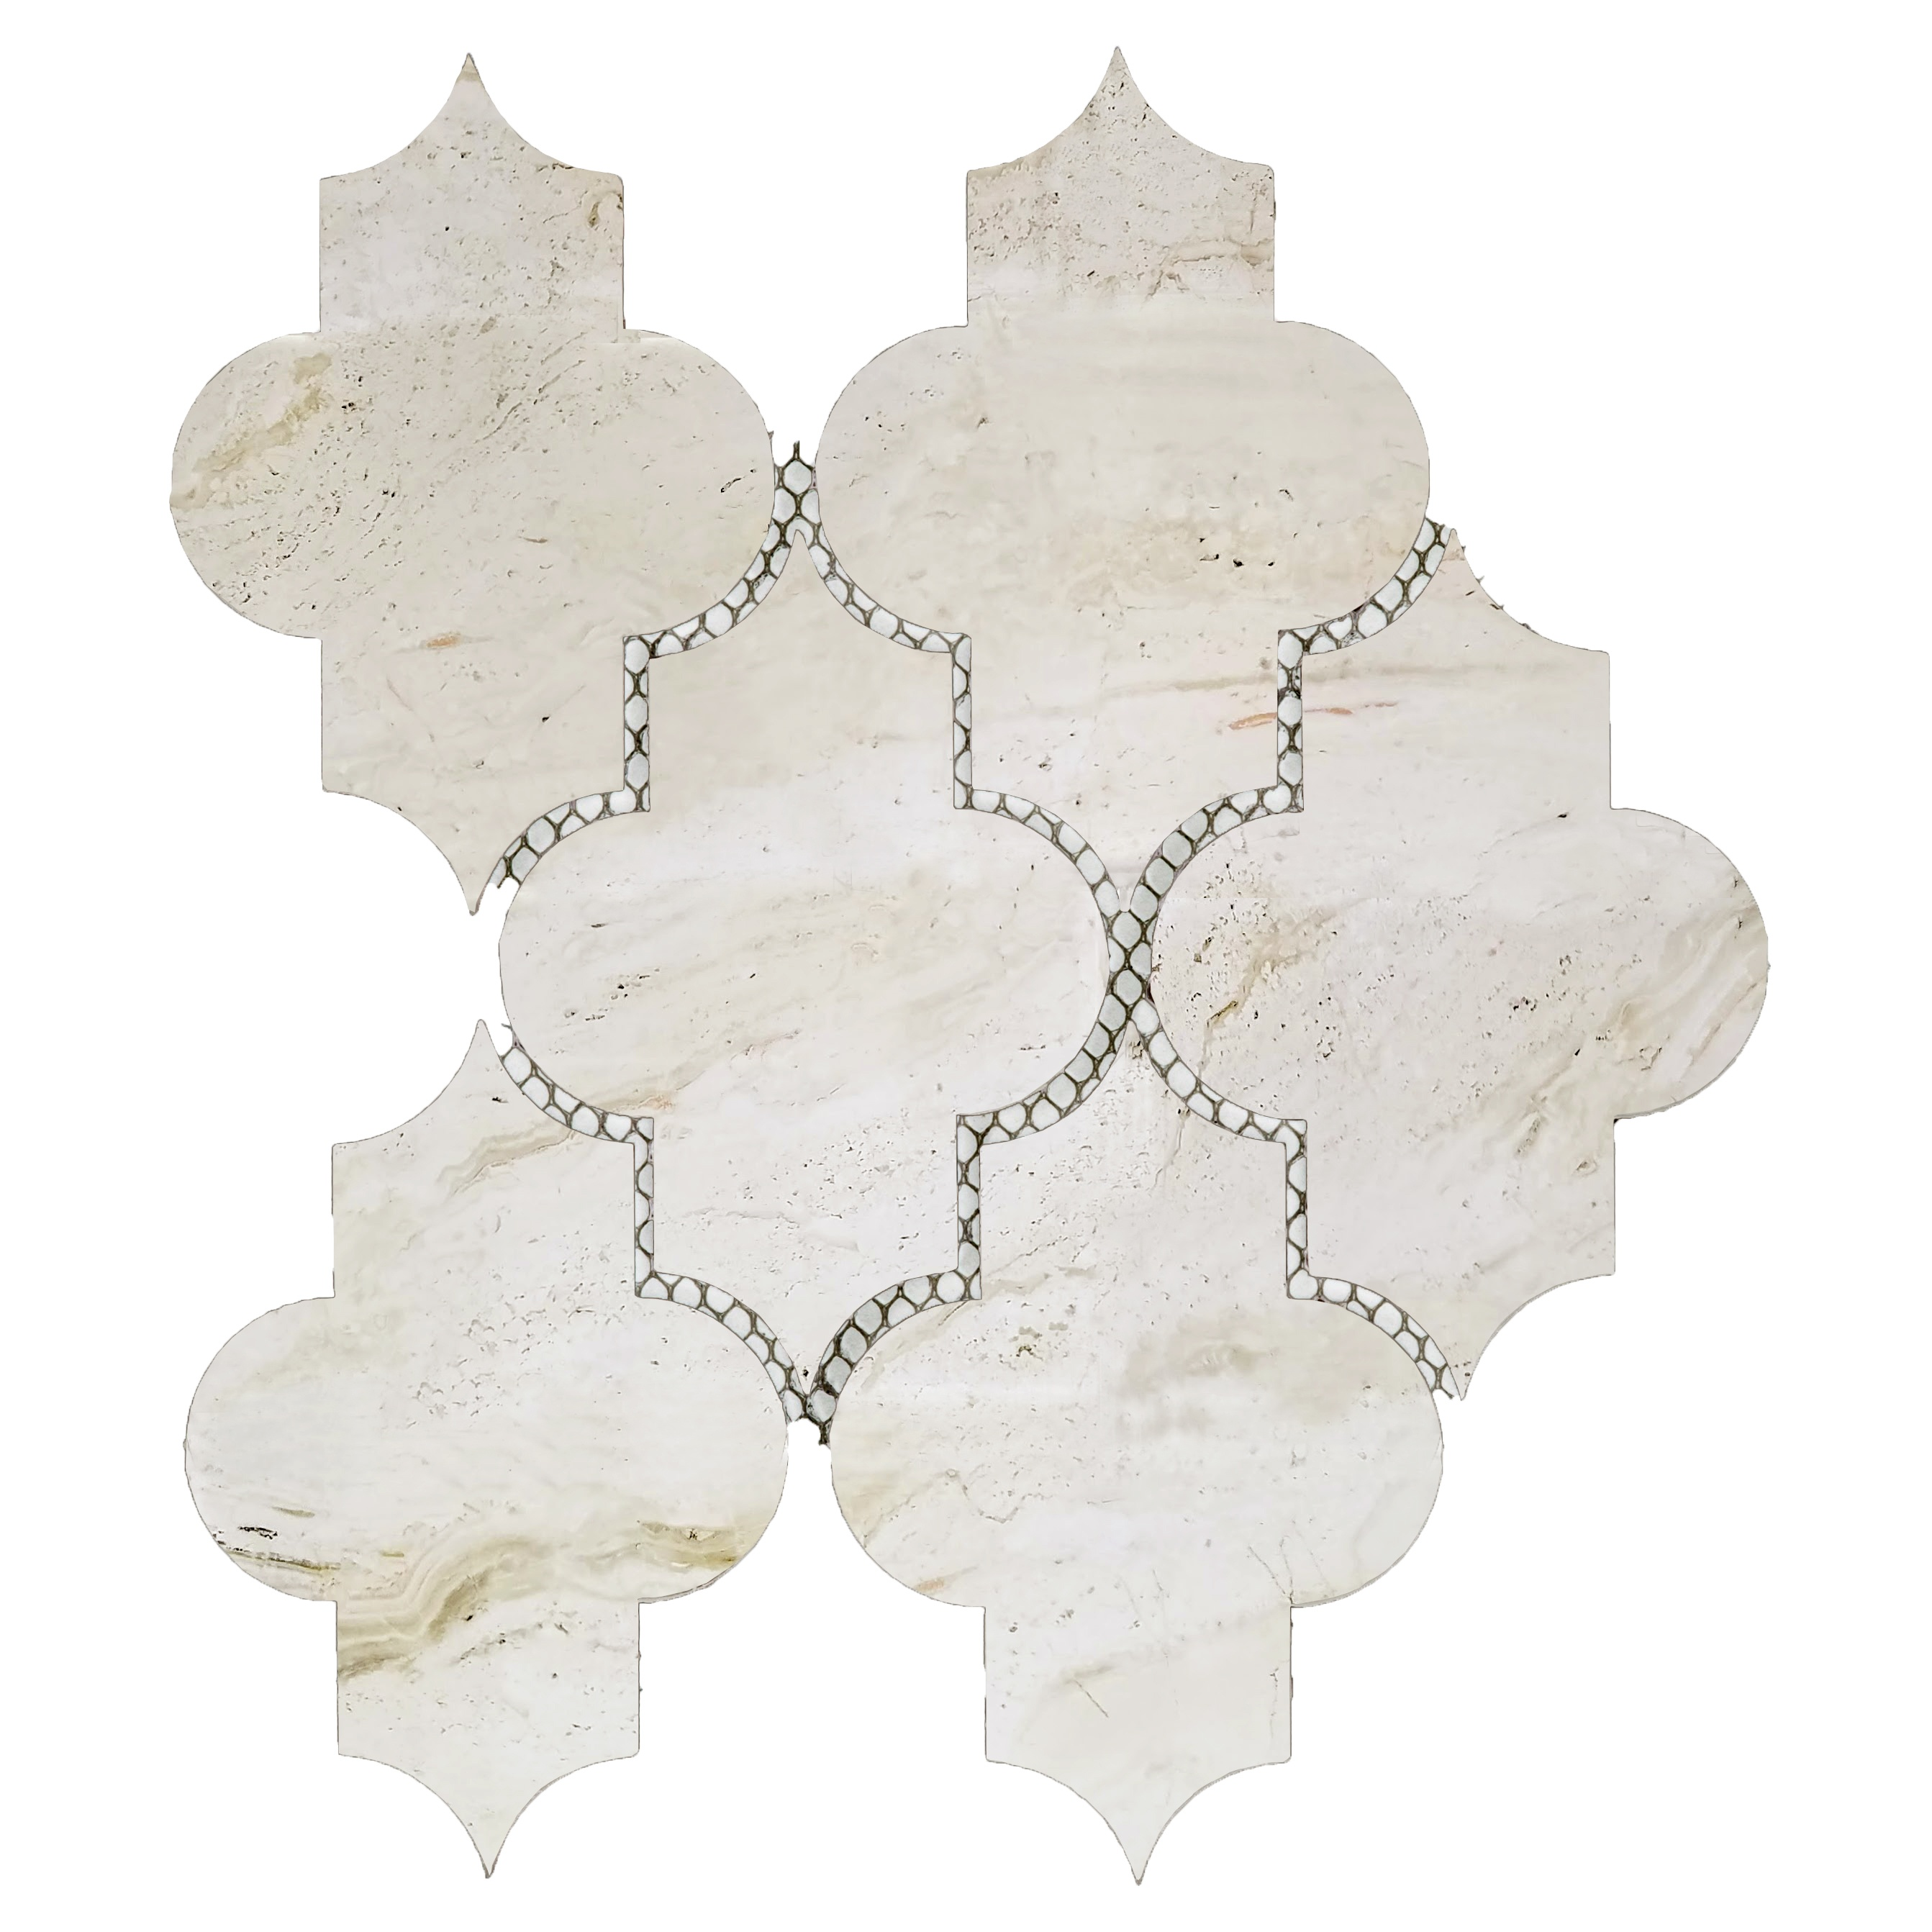 Nature 4 in x 5.5 in Glass Small Lantern Mosaic in CREMA MARFIL Glossy